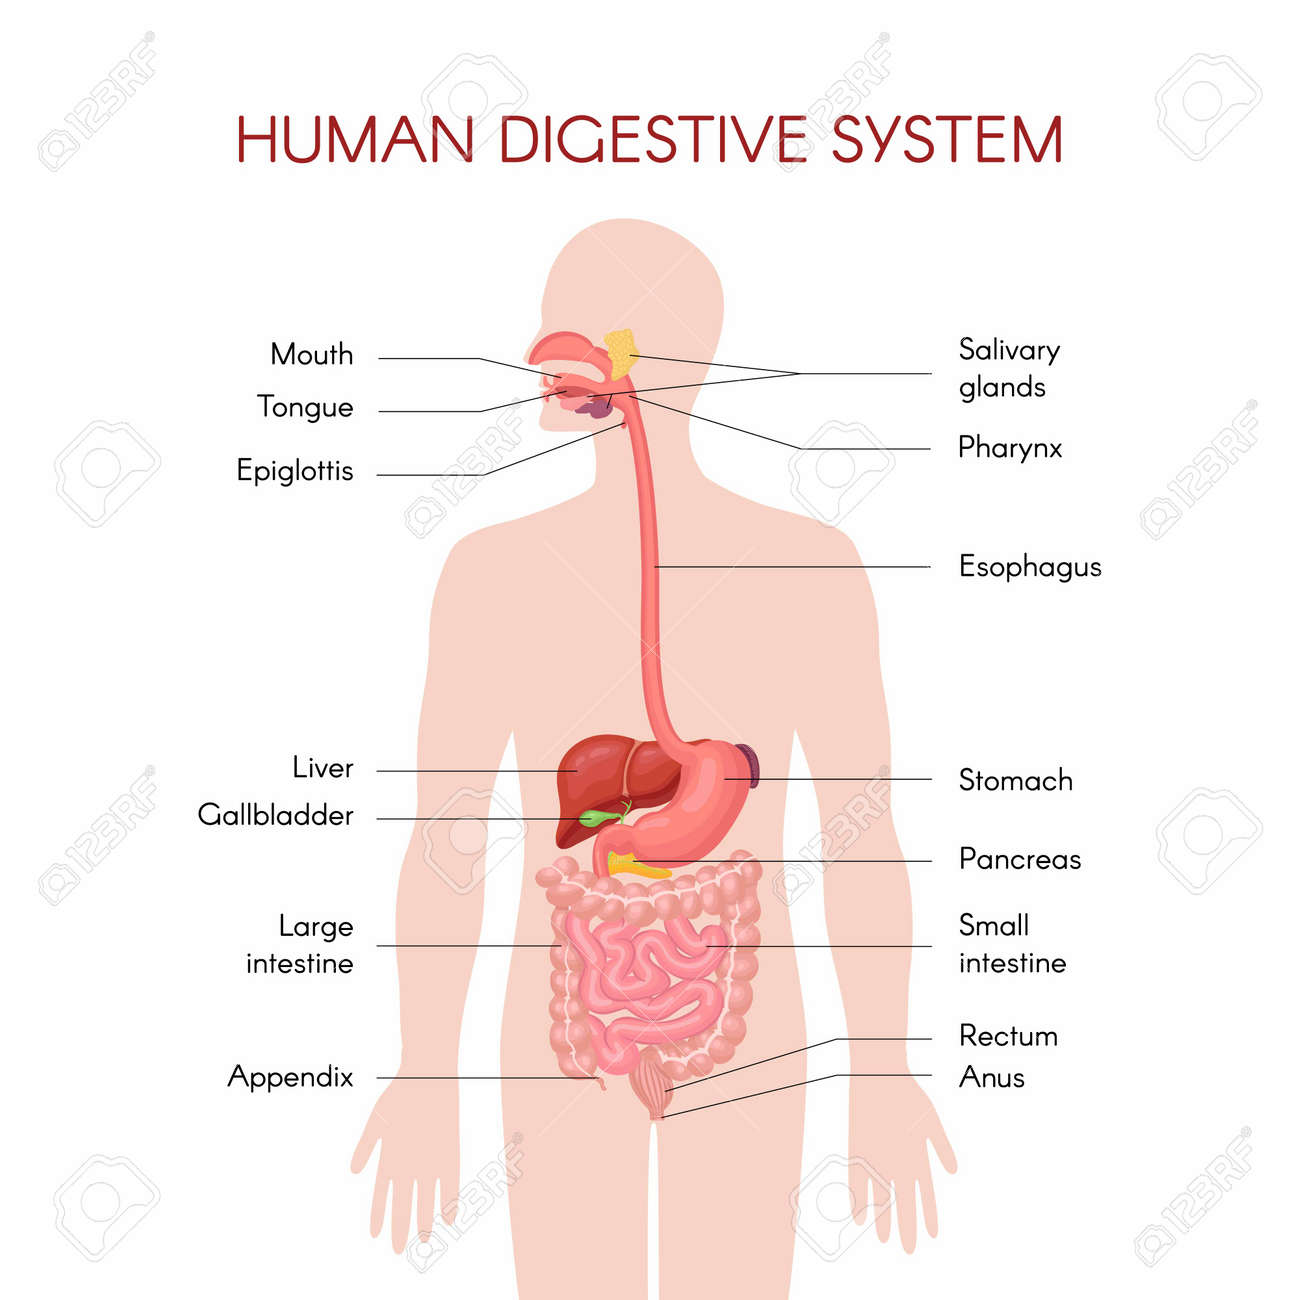 Anatomy of the human digestive organs with description of the corresponding functions internal organs. Anatomical vector illustration in flat style isolated over white background. - 169635050